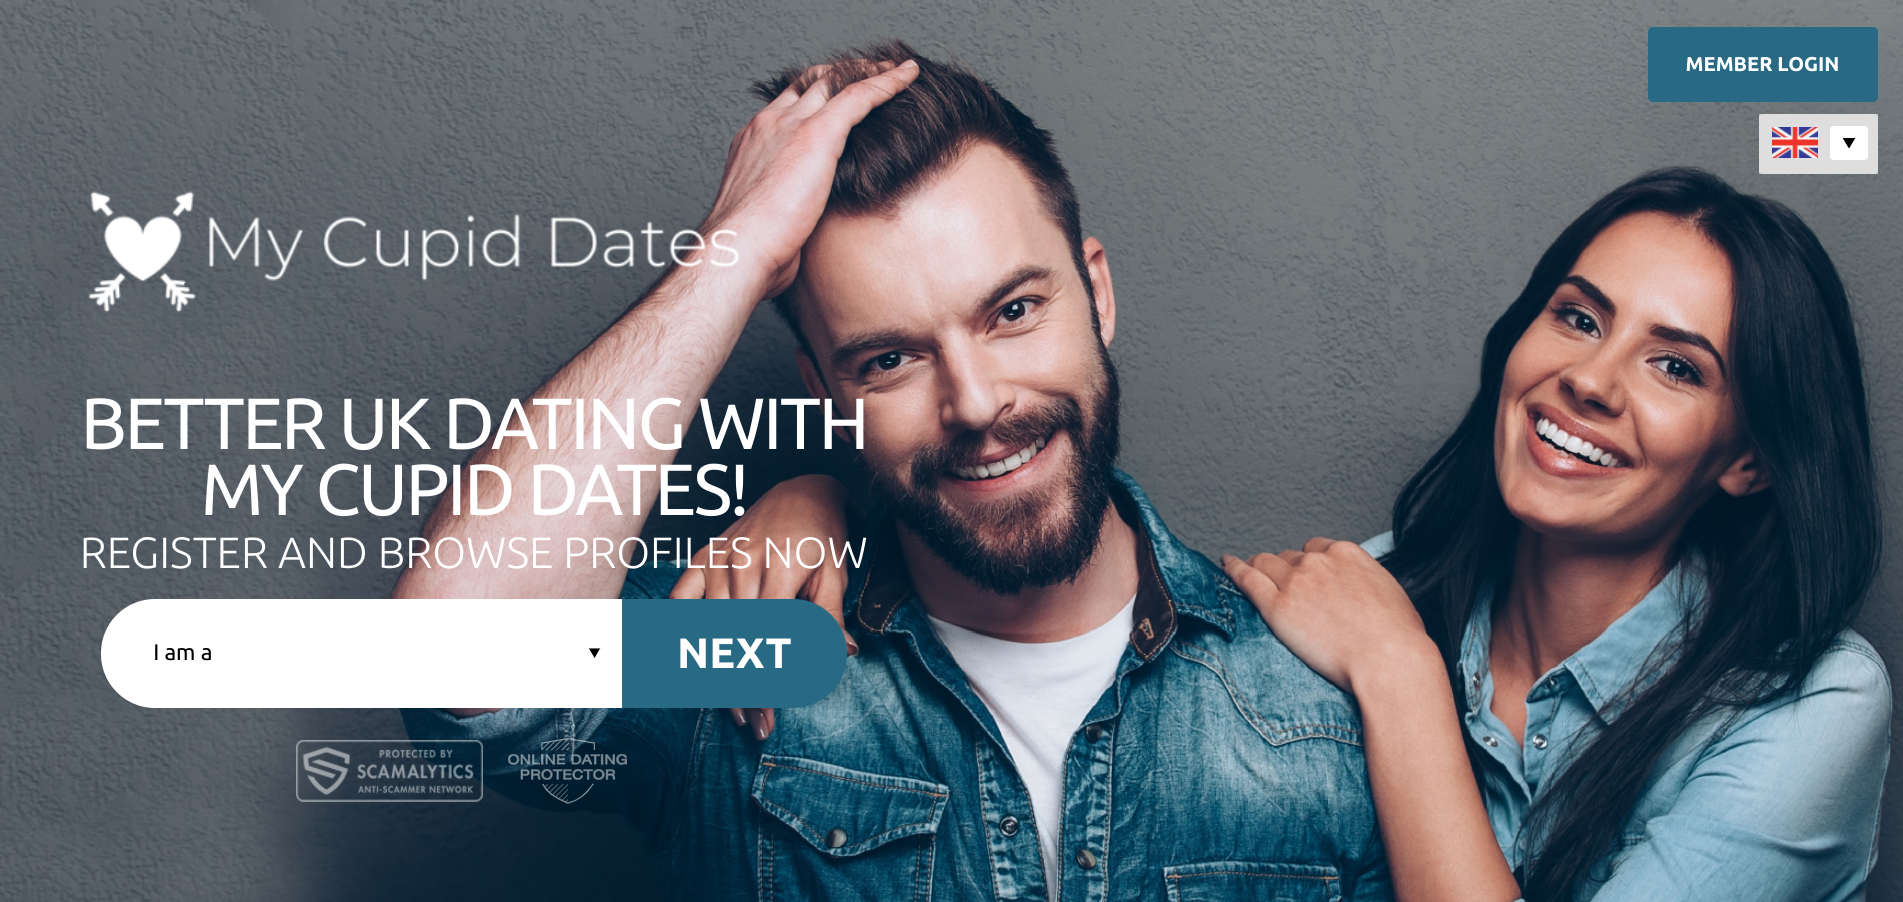 White Label Dating Introduces New Partner Dating Site 'My Cupid Dates'